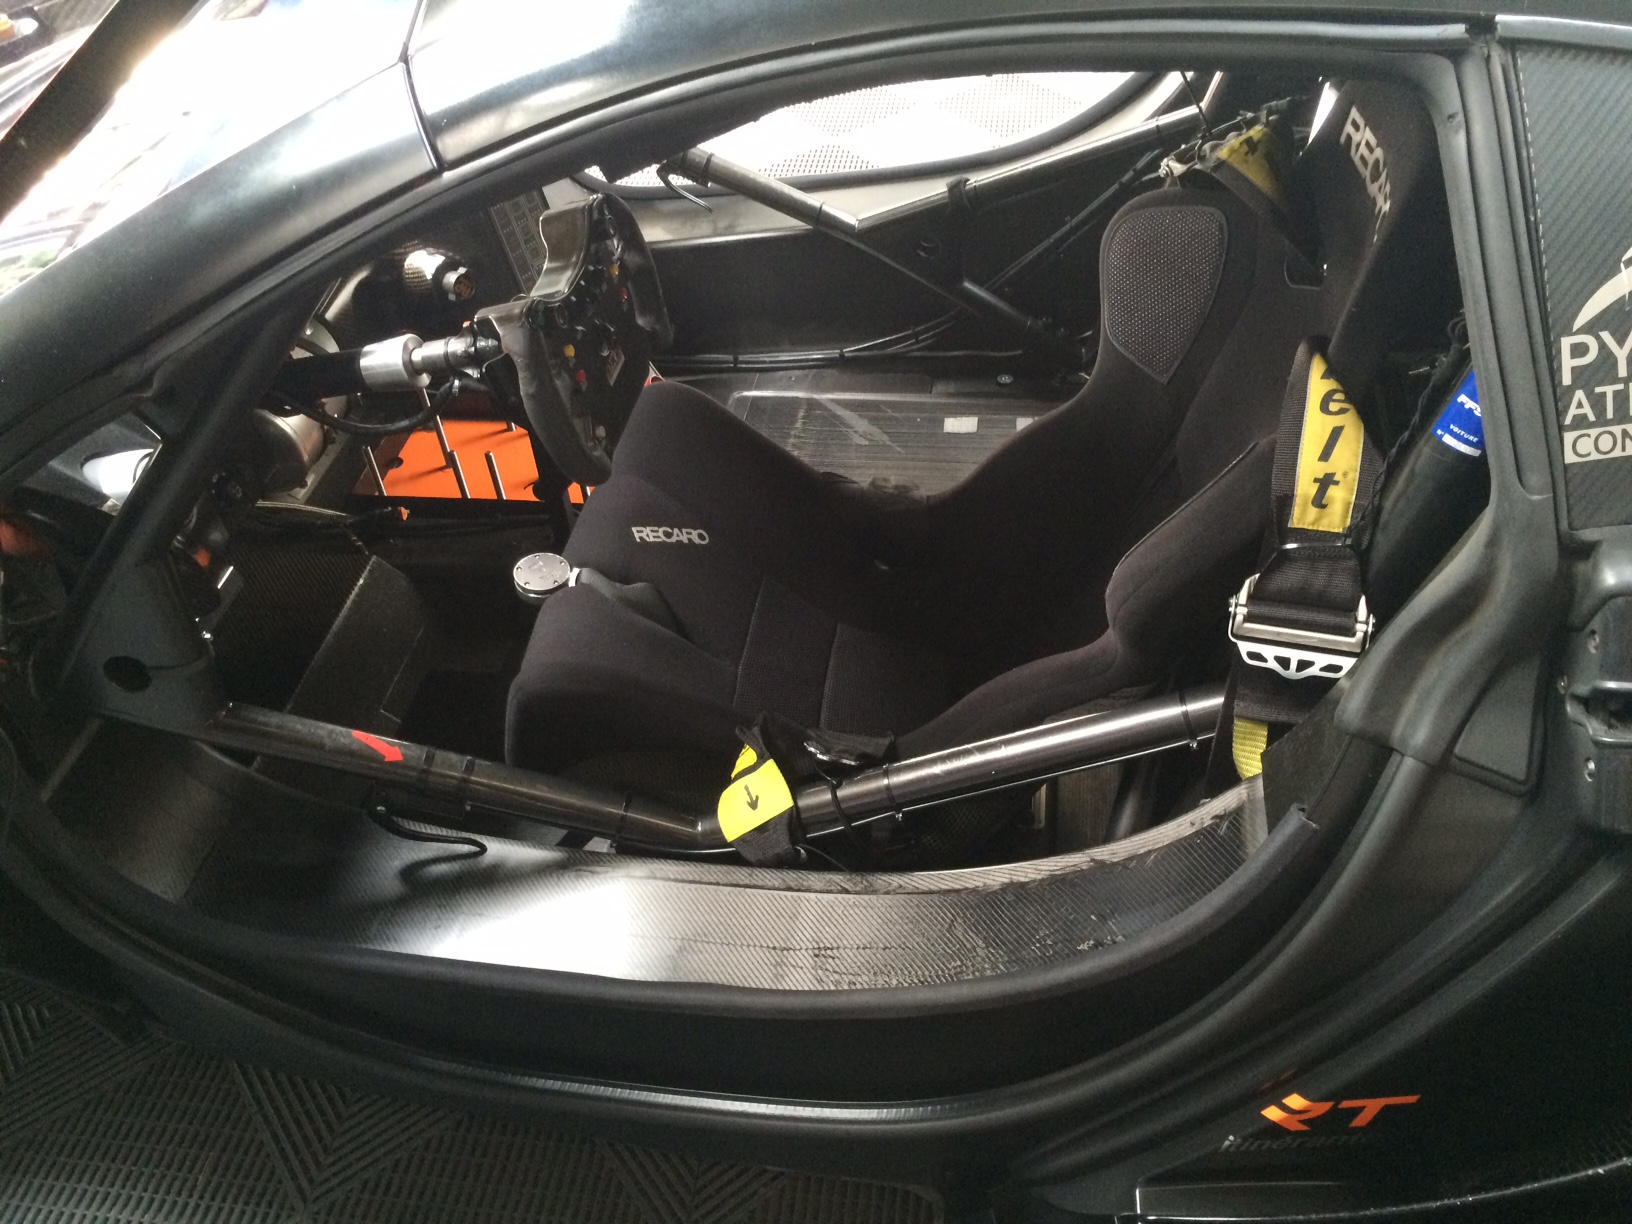 Vehicles For Sale: Race Cars For Sale At Raced